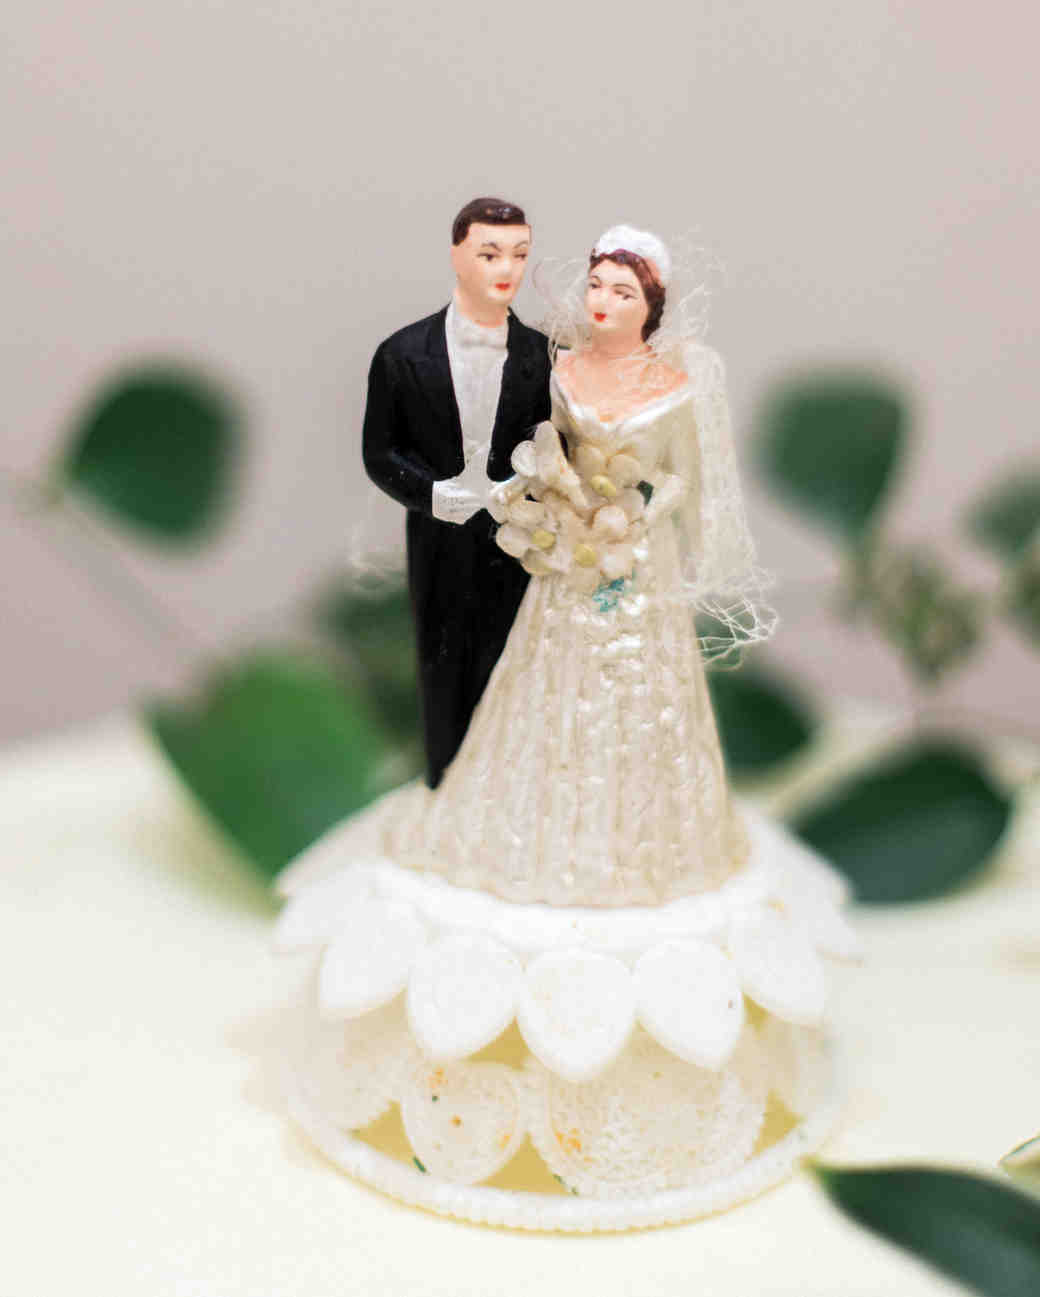 rachel-tyson-wedding-caketopper-365-s112158-0915.jpg